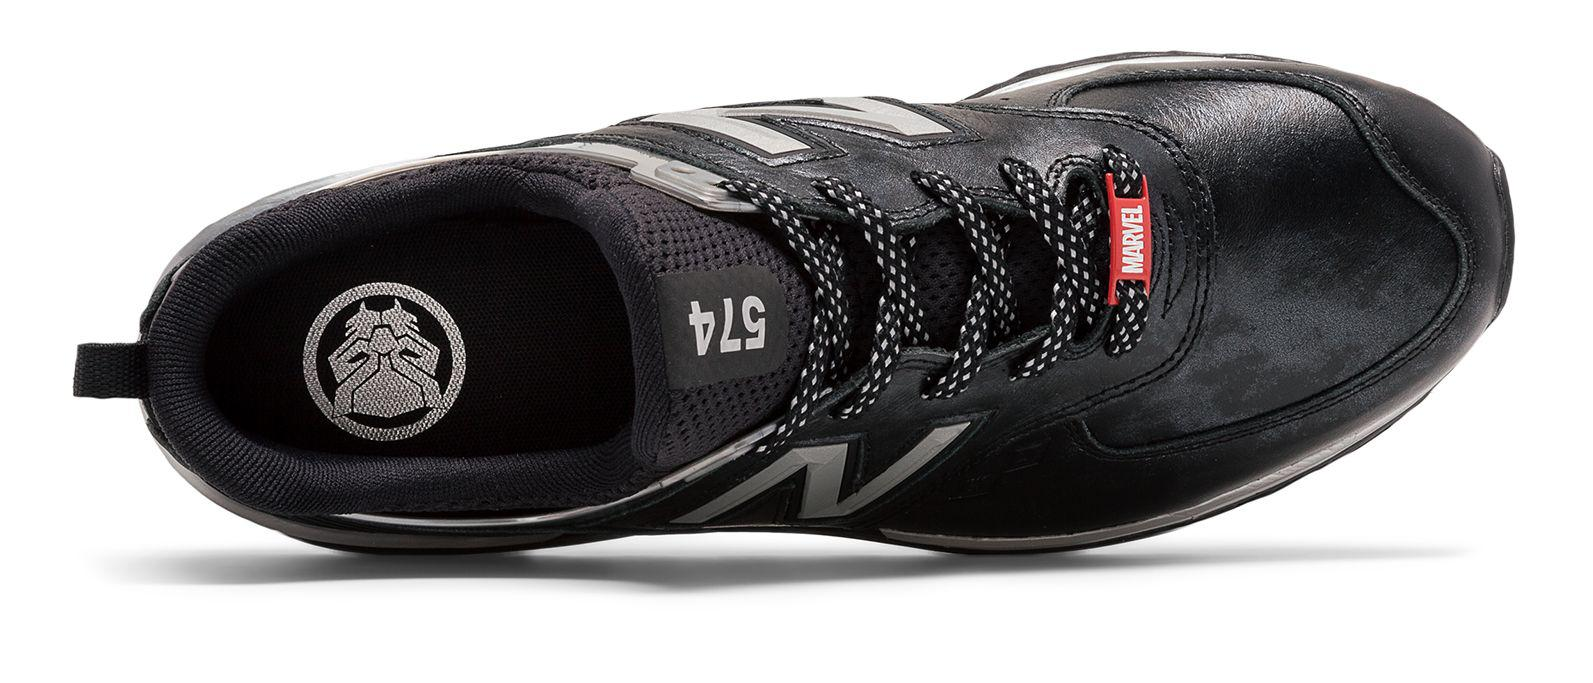 detailed look 6eb1b a8019 New Balance 574 Sport Black Panther for men